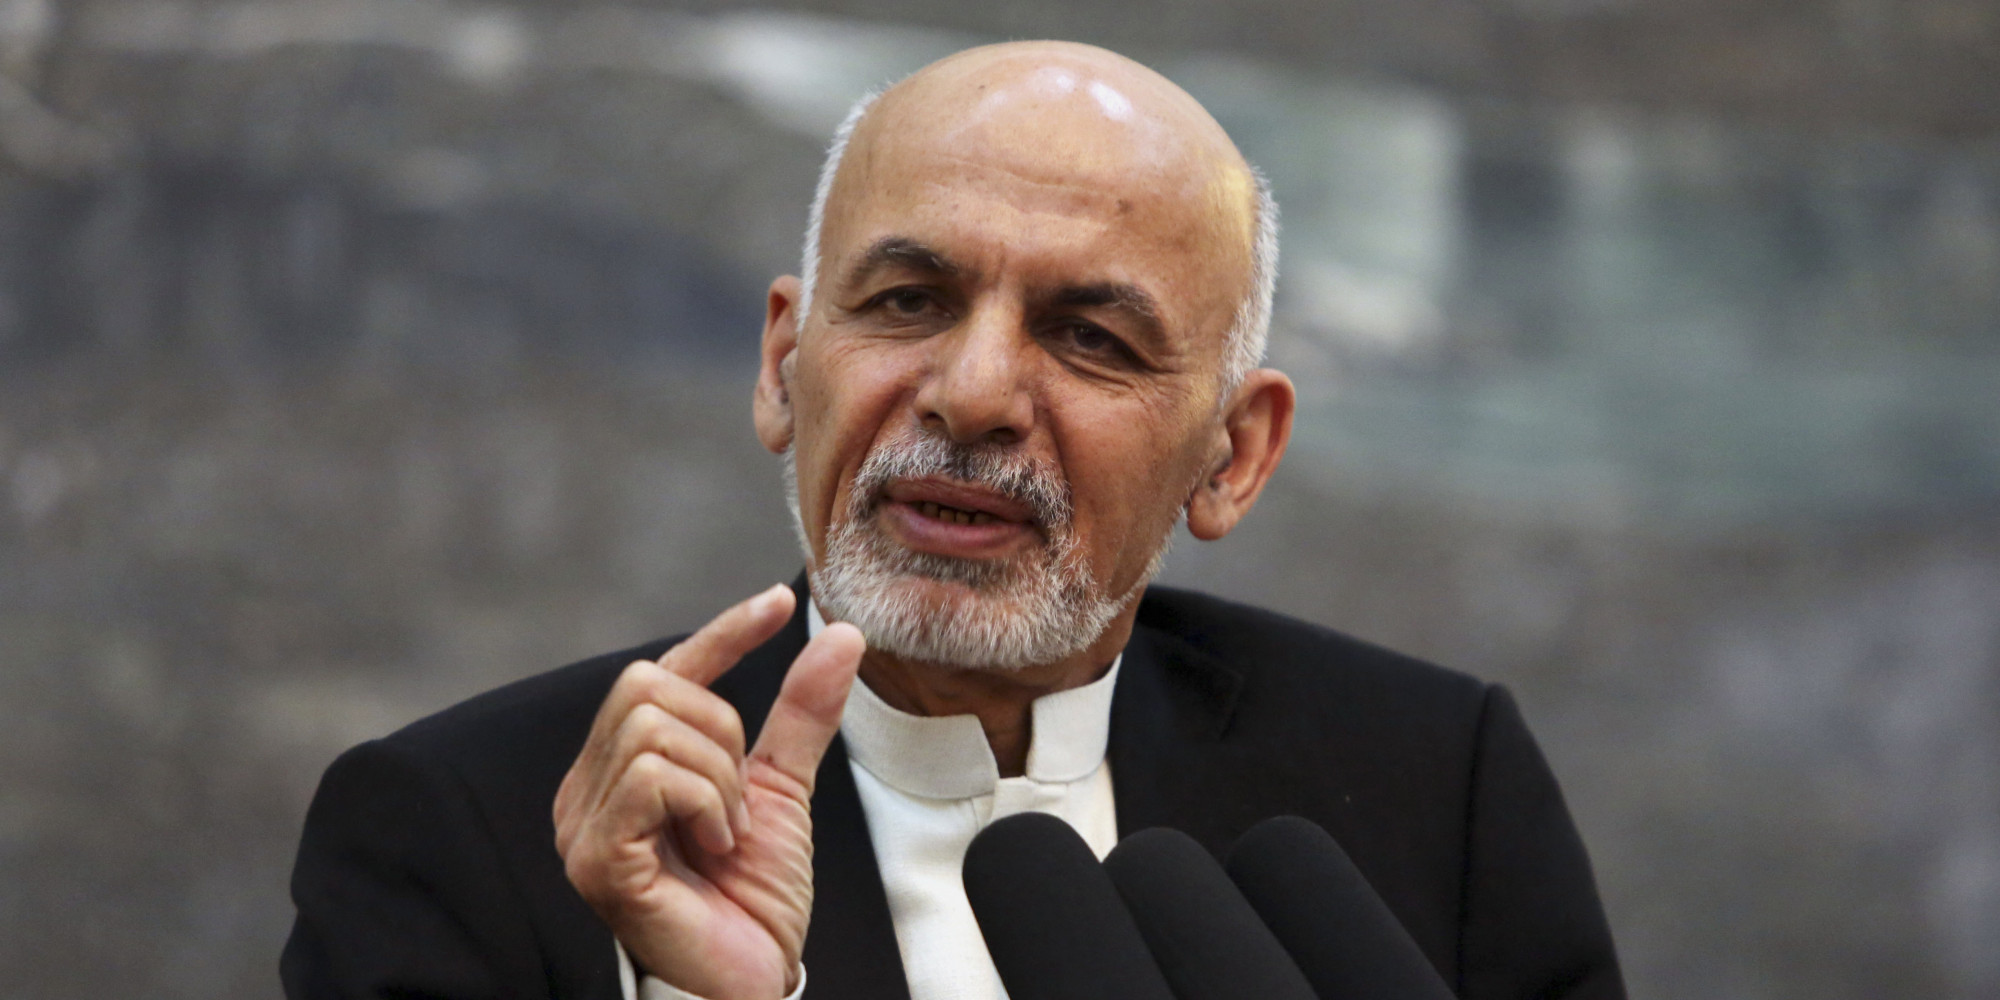 Afghan President Ashraf Ghani apologises to Afghan women over 'head scarf' remark